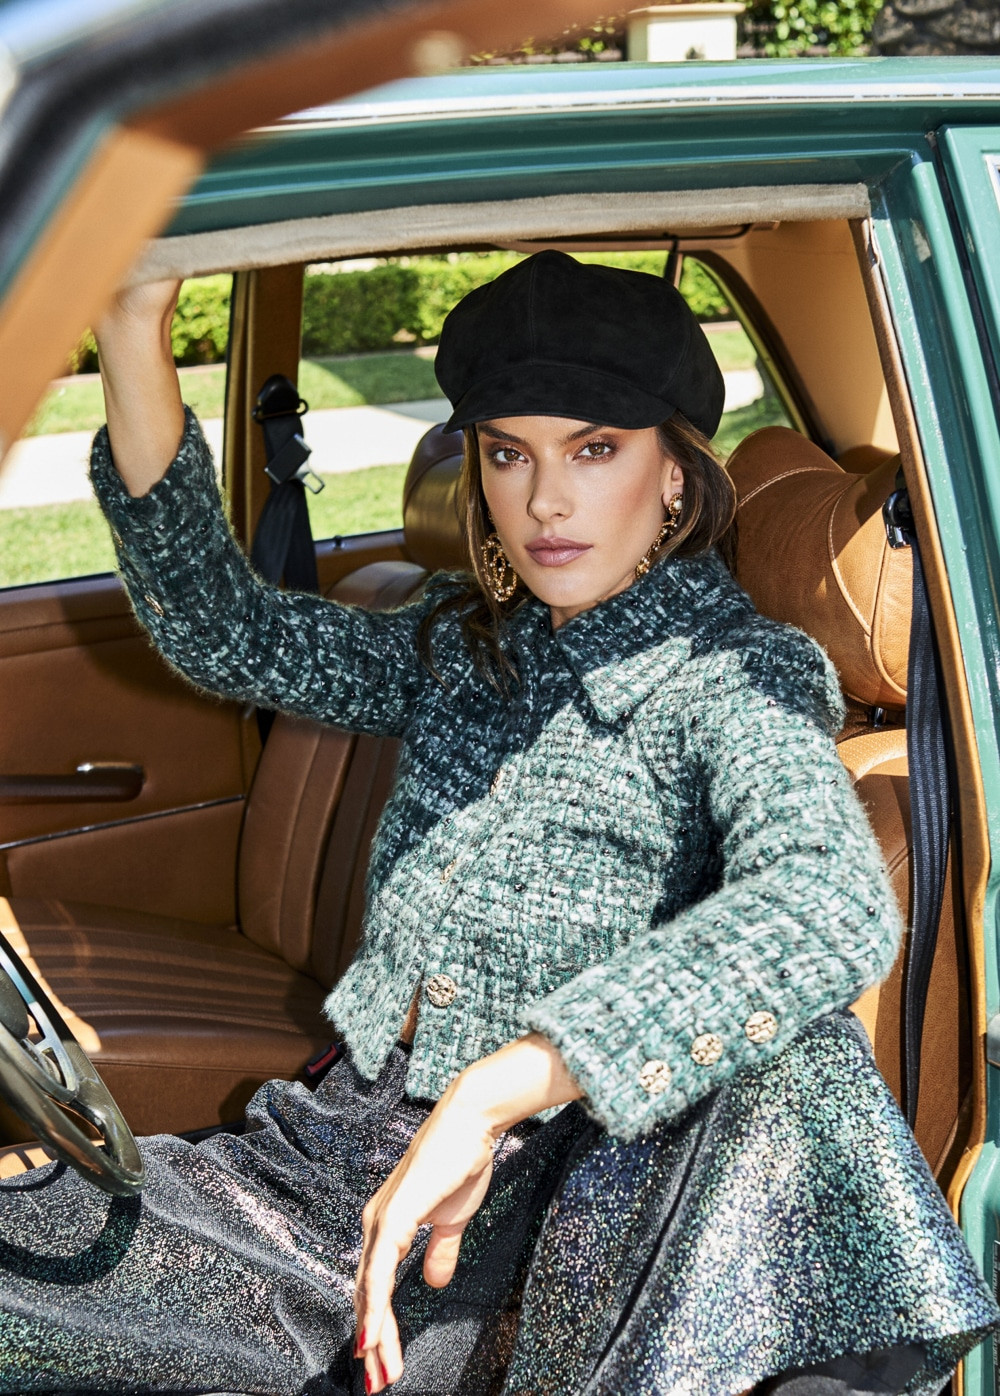 alessandra-ambrosio-instyle-in-style-russia-october-2018-magazine-stewart-shining-fashion-photographer-photography-trends-trending-ootd-autumn-fall